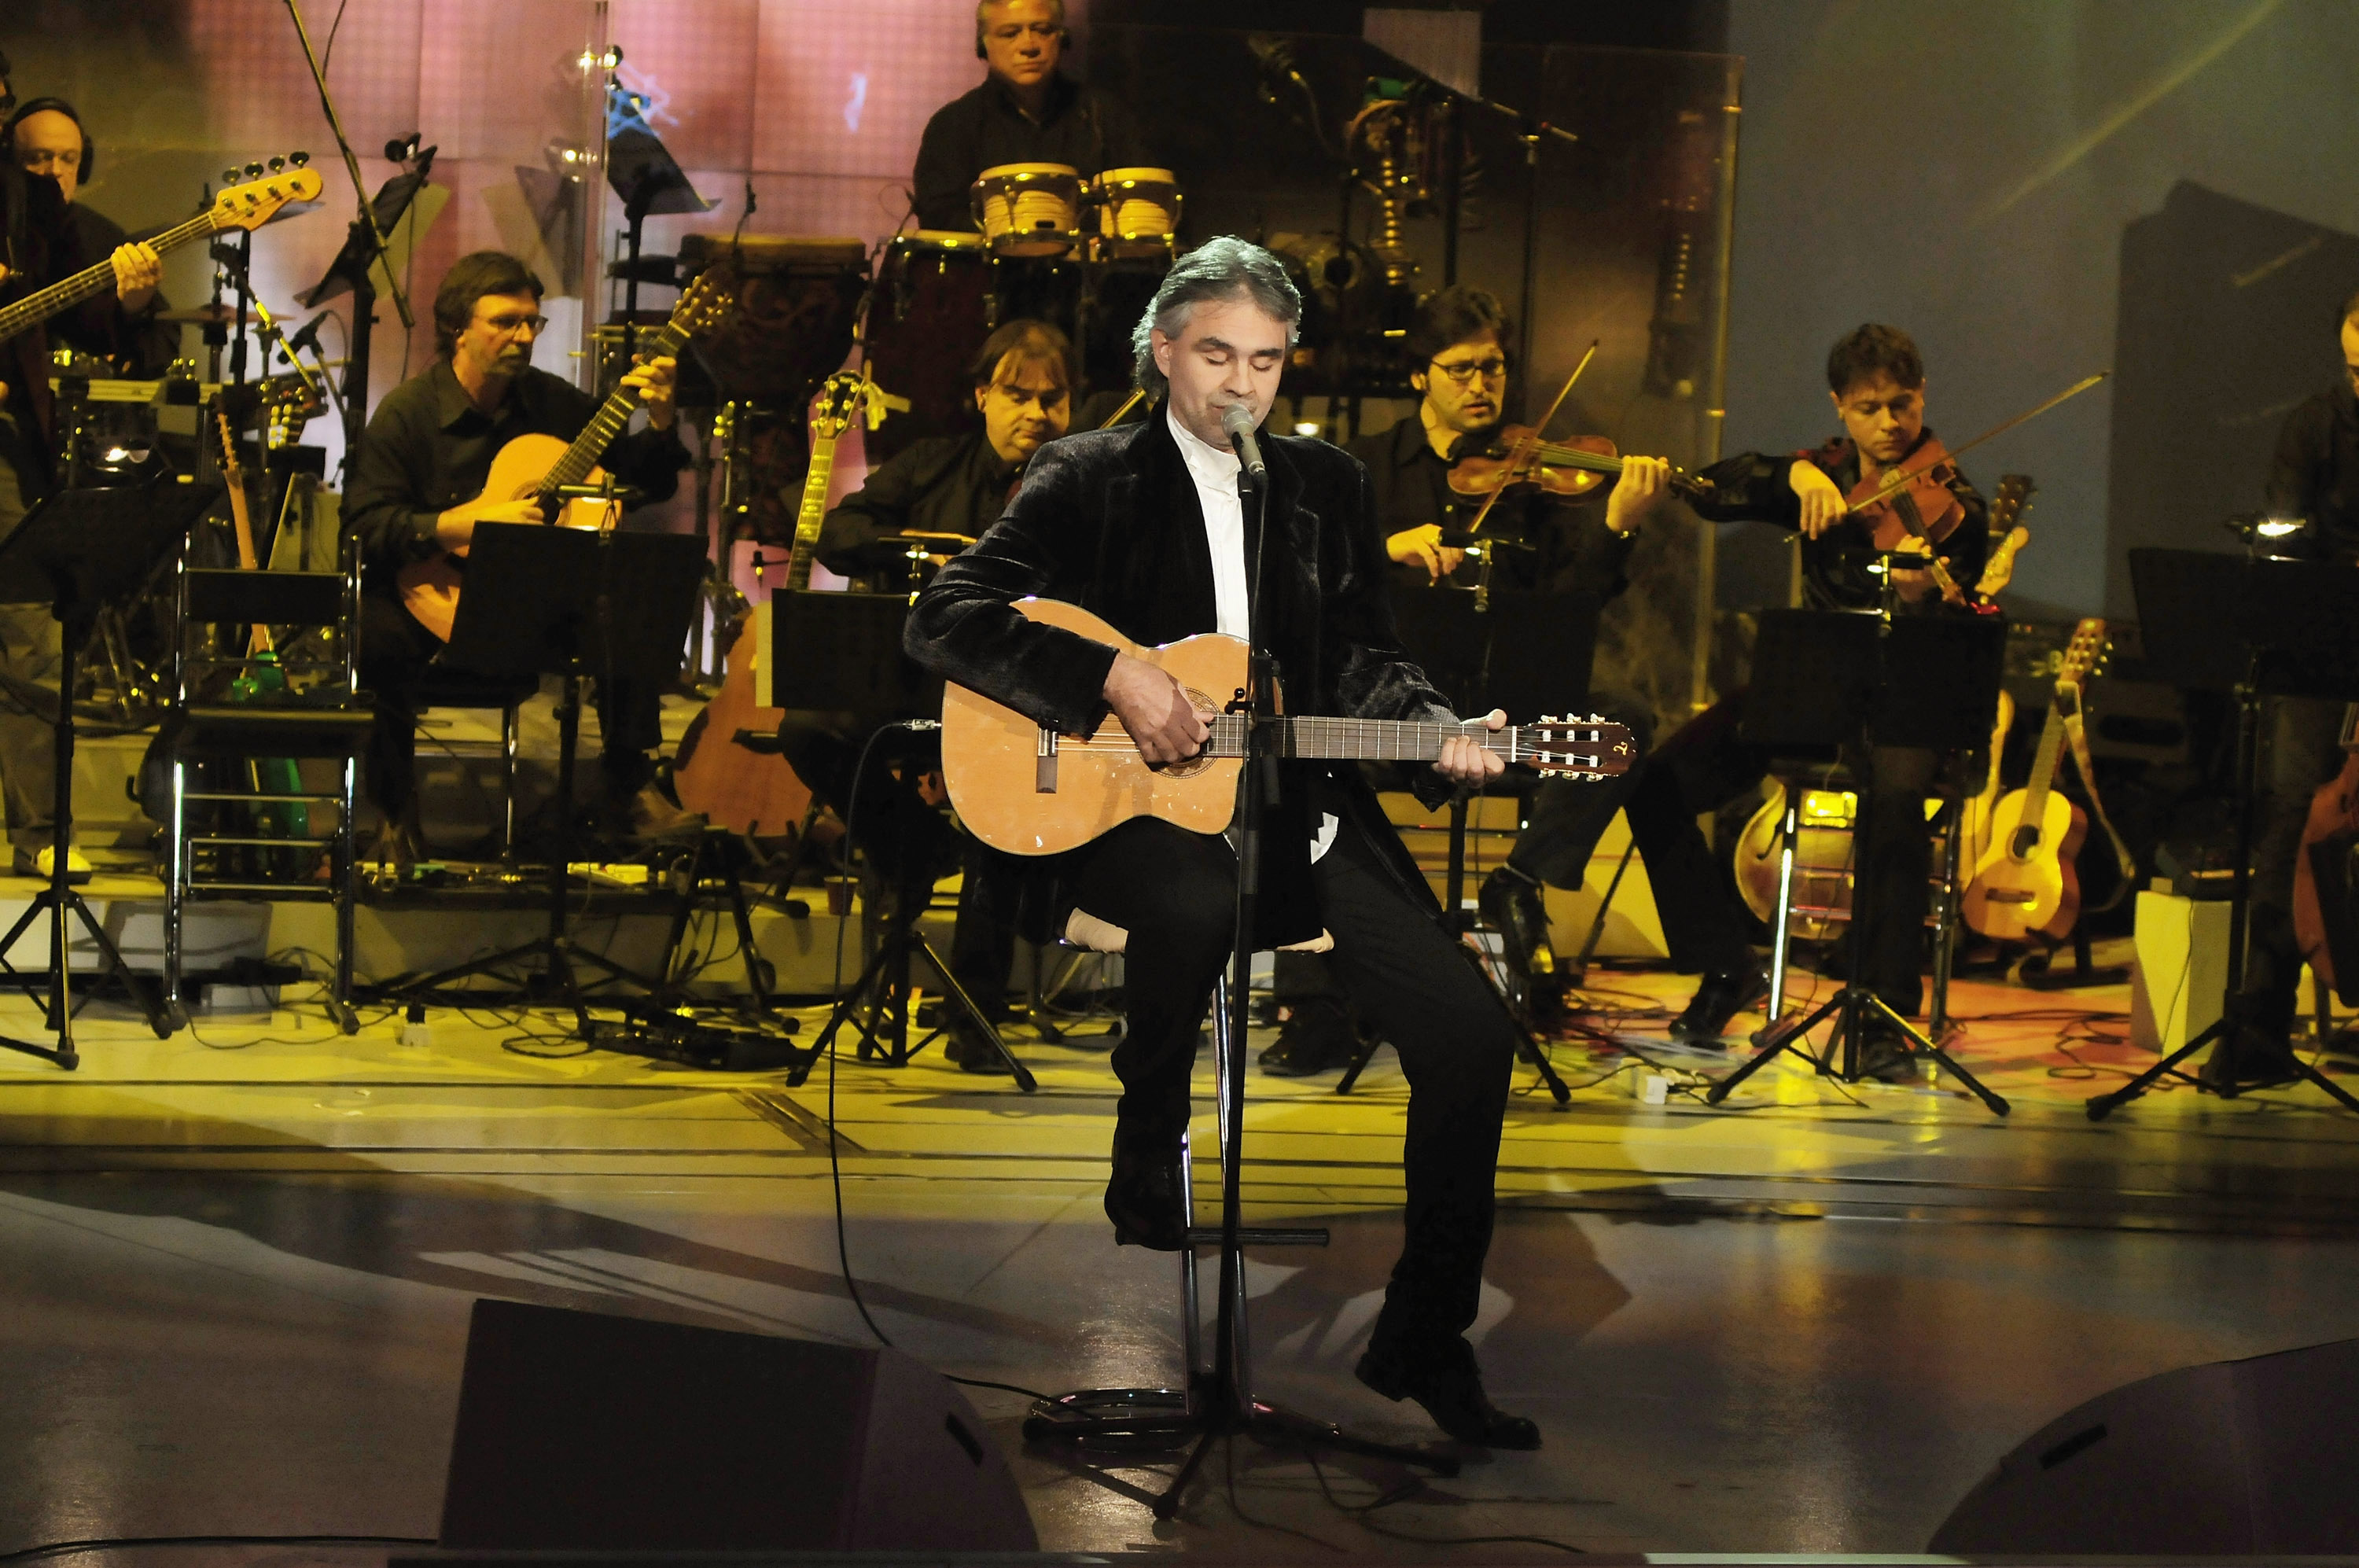 YouTube: la performance de Pâques d'Andrea Bocelli bat un